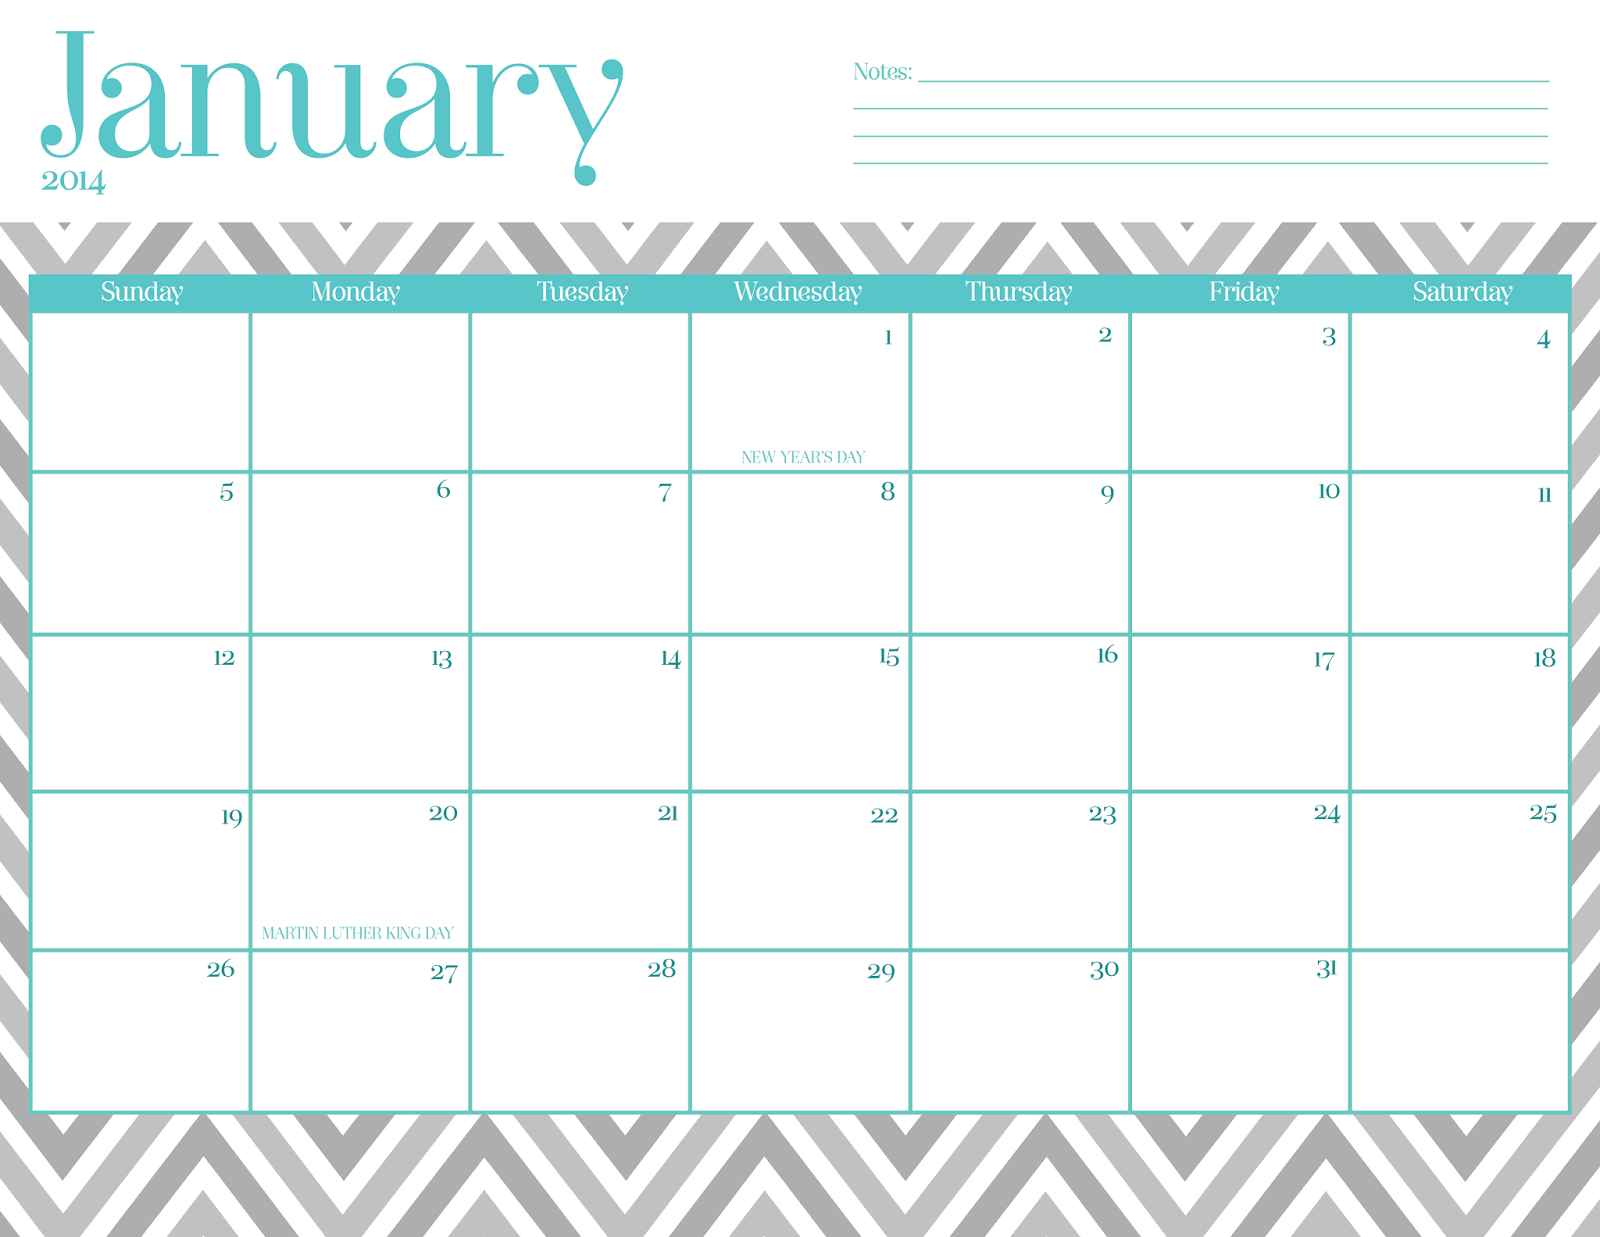 Cute Calendar Printable : Printable cute calendar by month template